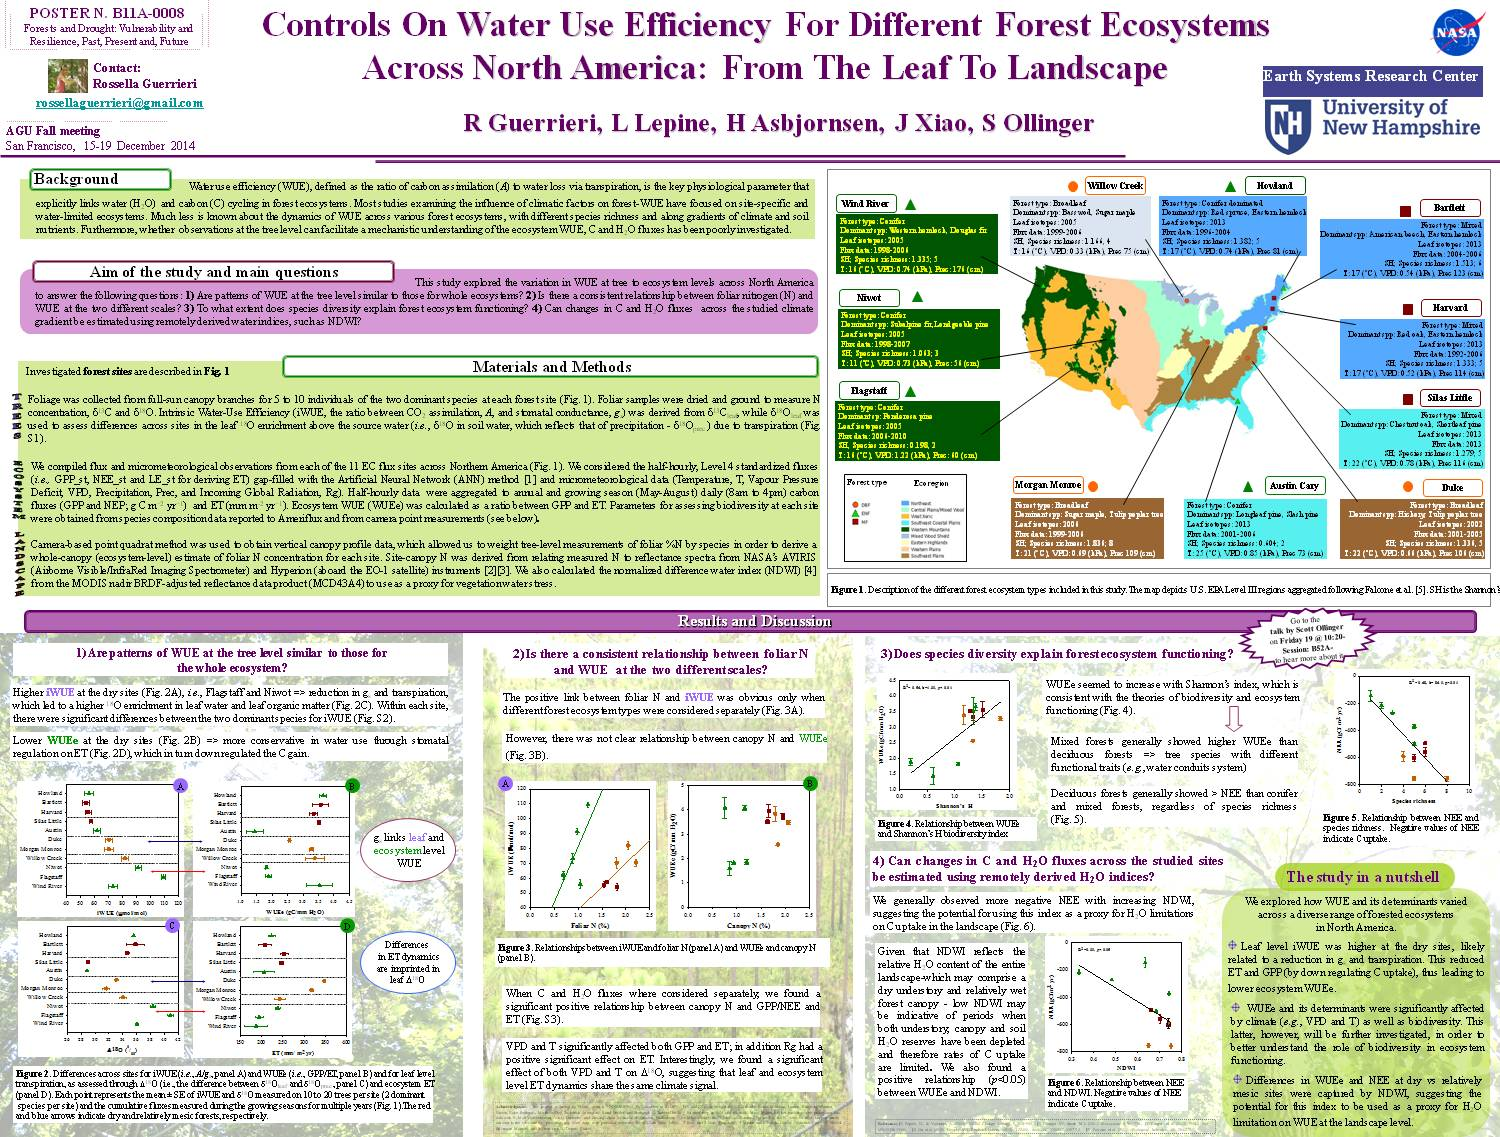 Controls On Water Use Efficiency For Different Forest Ecosystems Across North America: From The Leaf To Landscape by rogue77